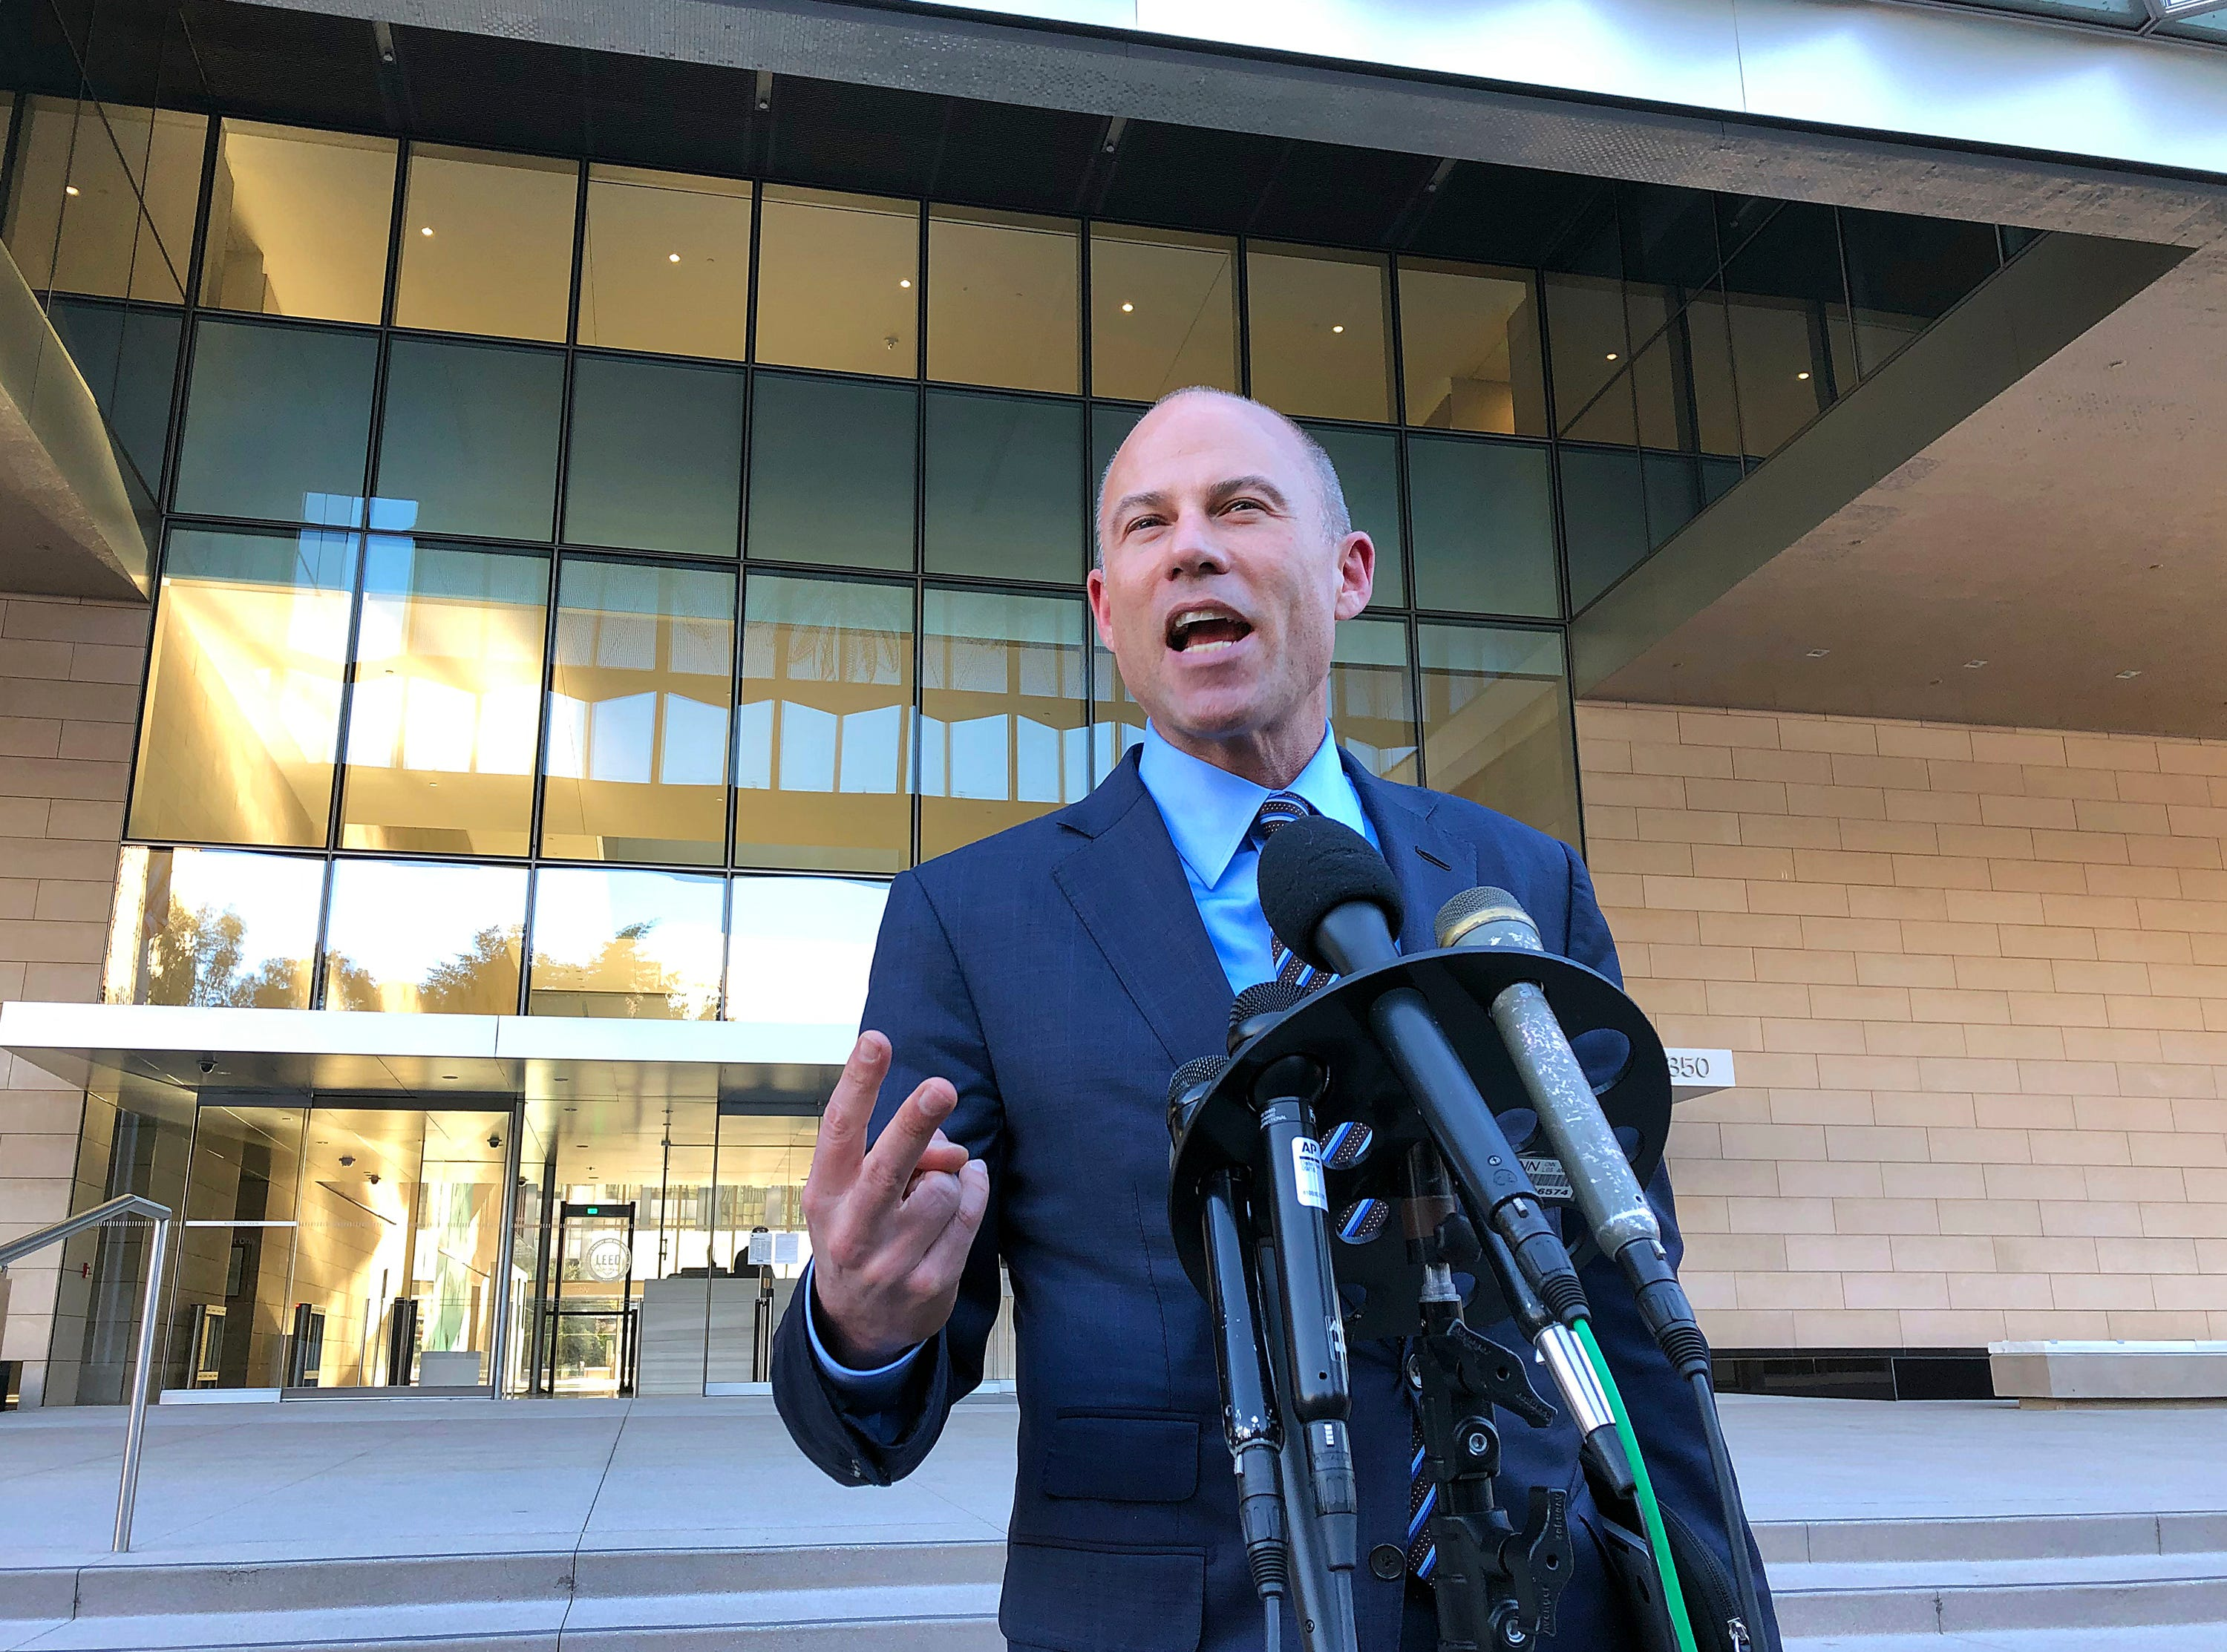 Michael Avenatti, lawyer for Stormy Daniels, says he will not run for president in 2020